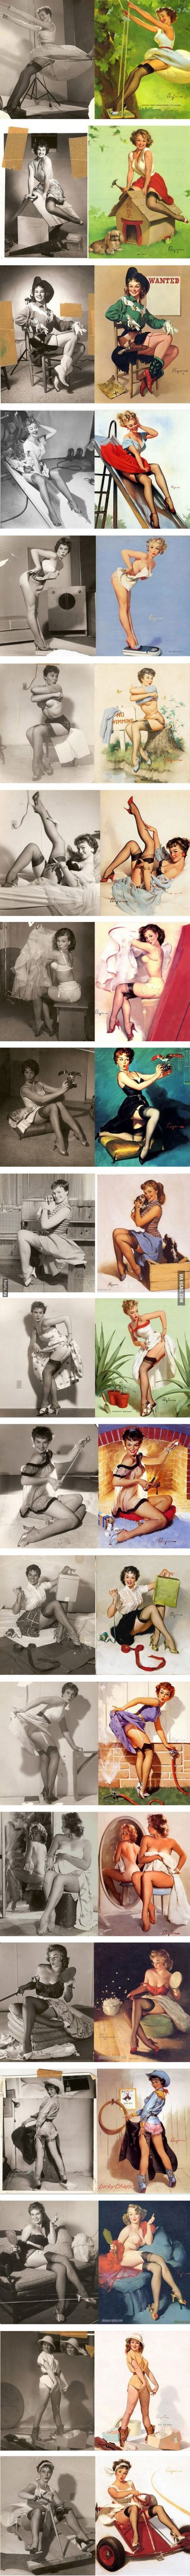 Pinups and their models- its interesting how the bodies of the women change